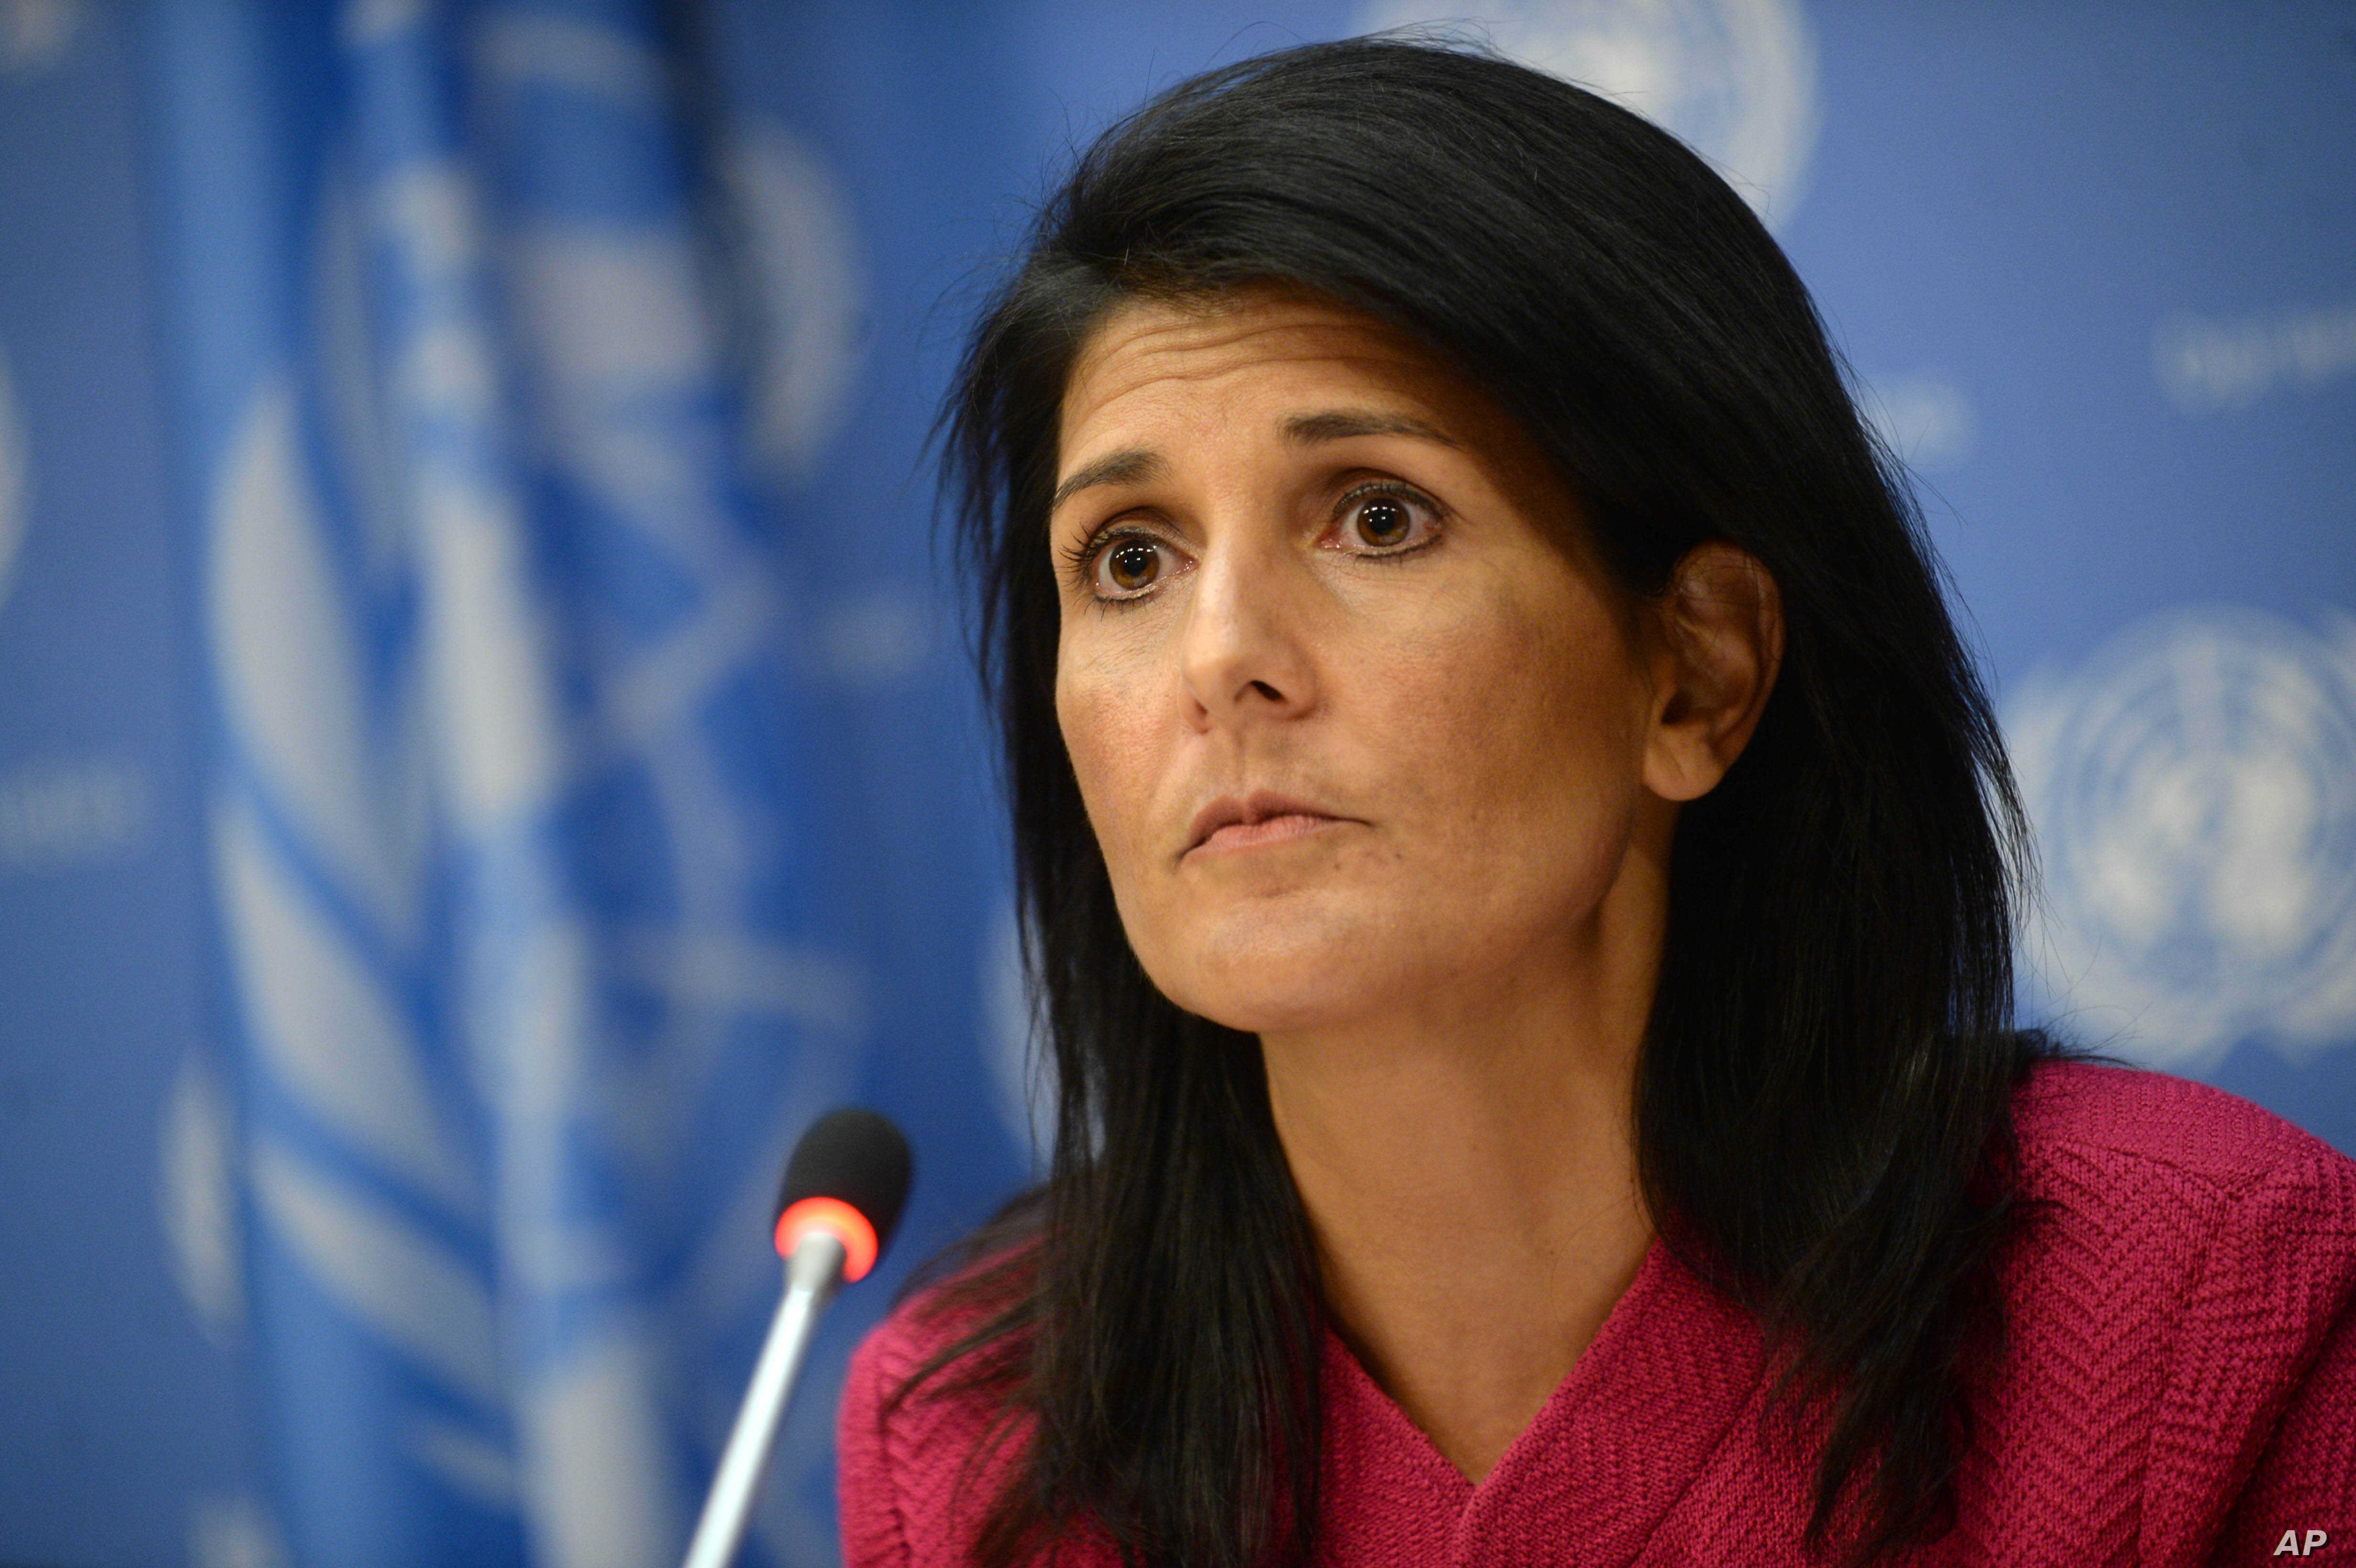 """U.S. Ambassador Nikki Haley said the Trump administration wants """"proof"""" from Sudan's government that it is making progress toward peace and protecting civilians in its vast and troubled Darfur region. Haley addressed the U.N. Security Council, April"""